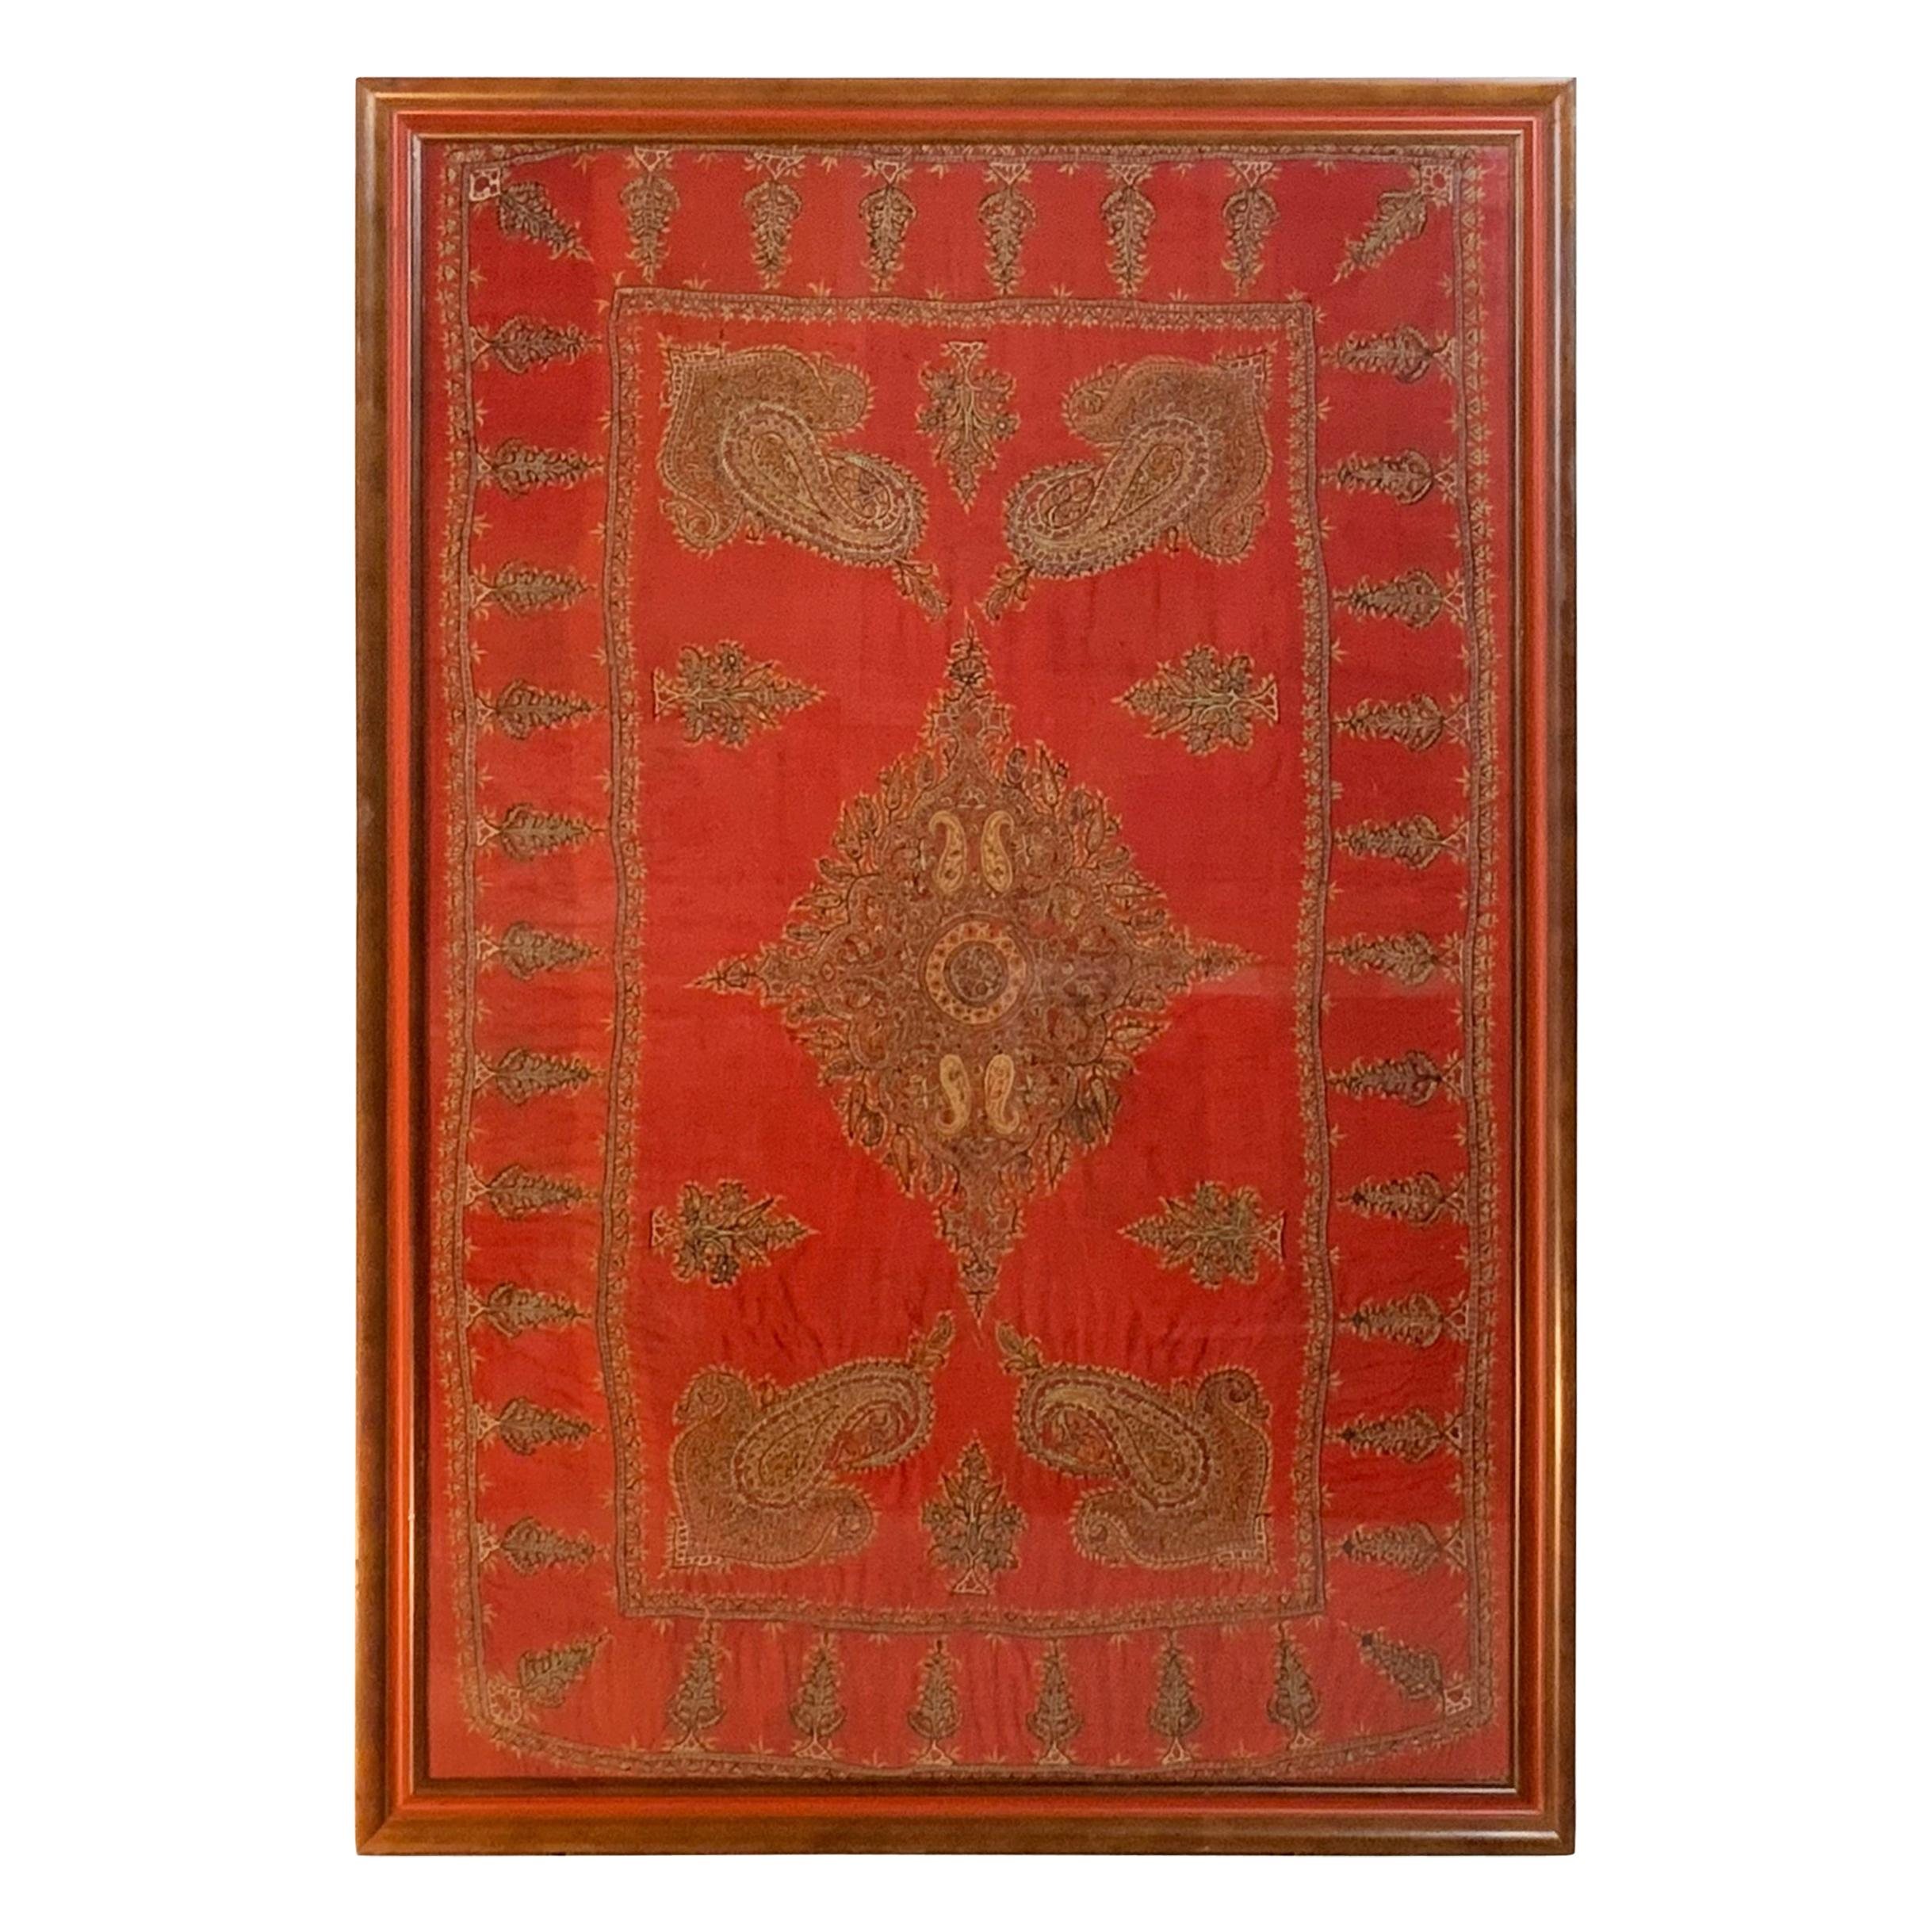 Early 20th Century Hand Embroidery Suzani Wall Hanging